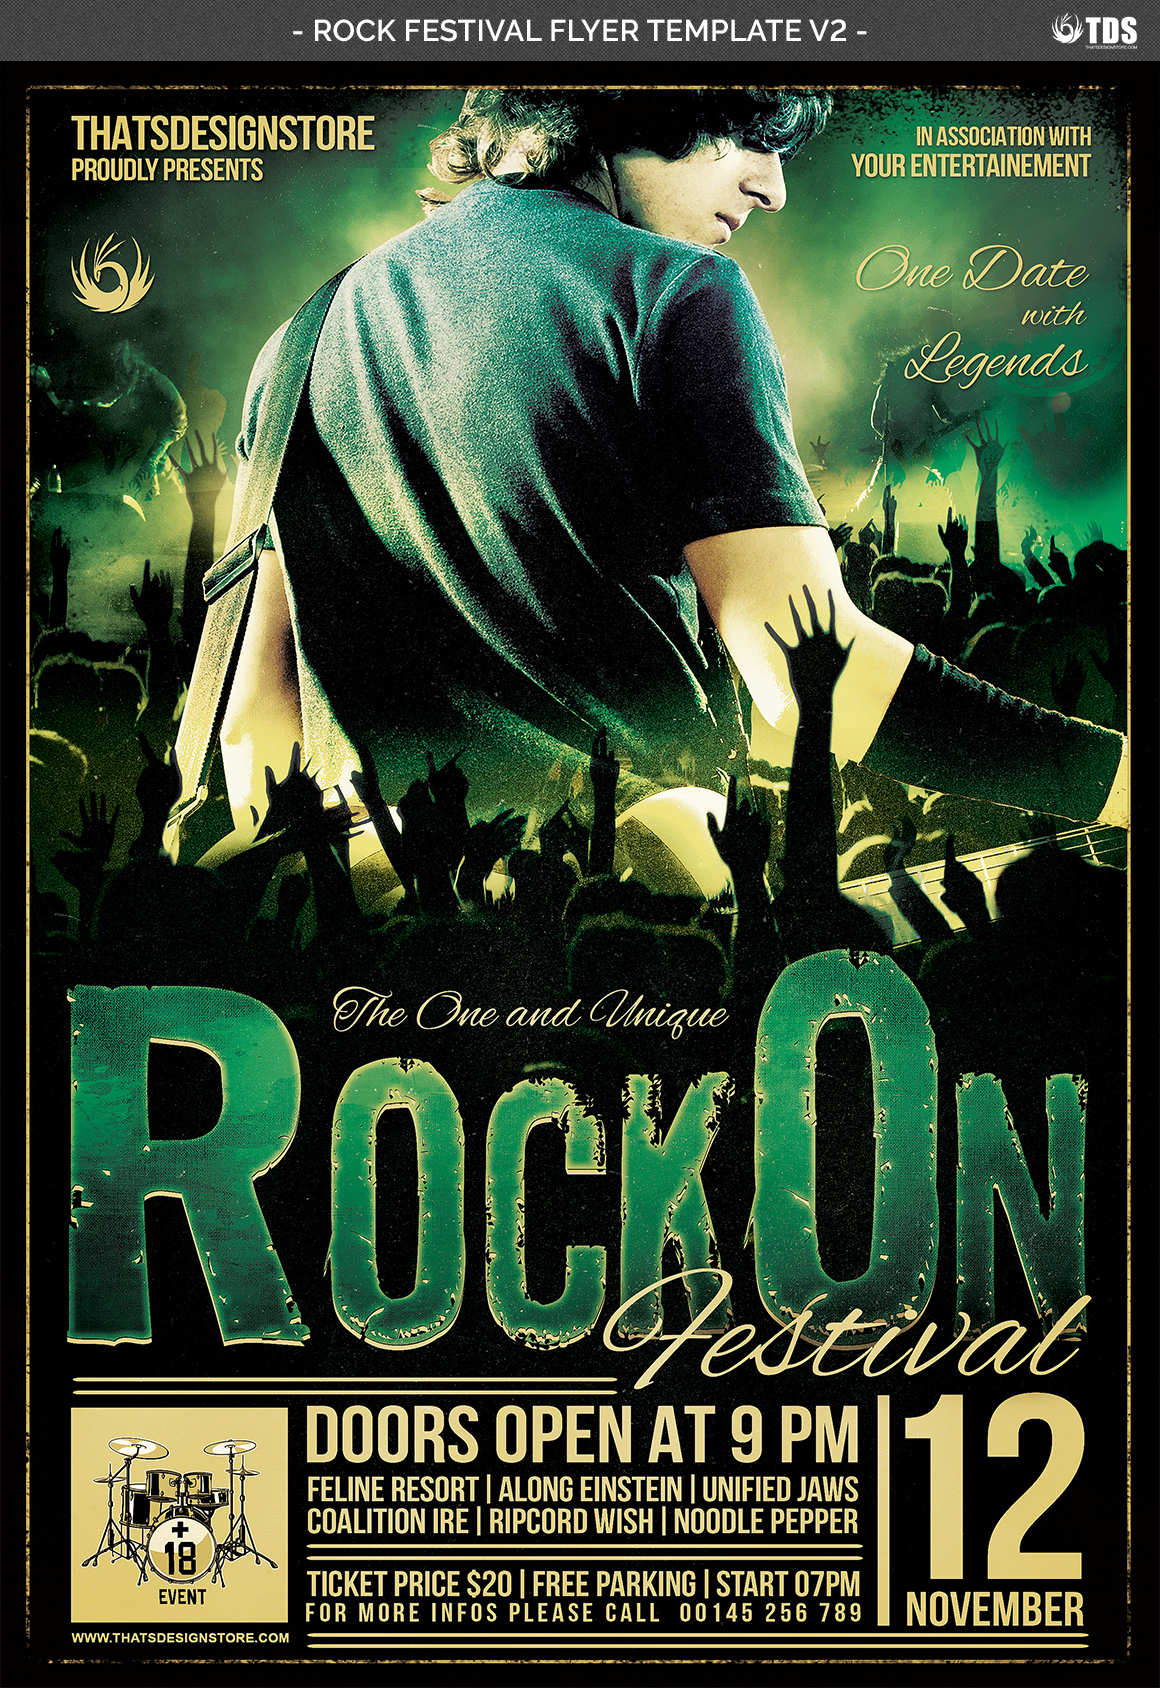 Rock Festival Flyer Template V2 example image 4